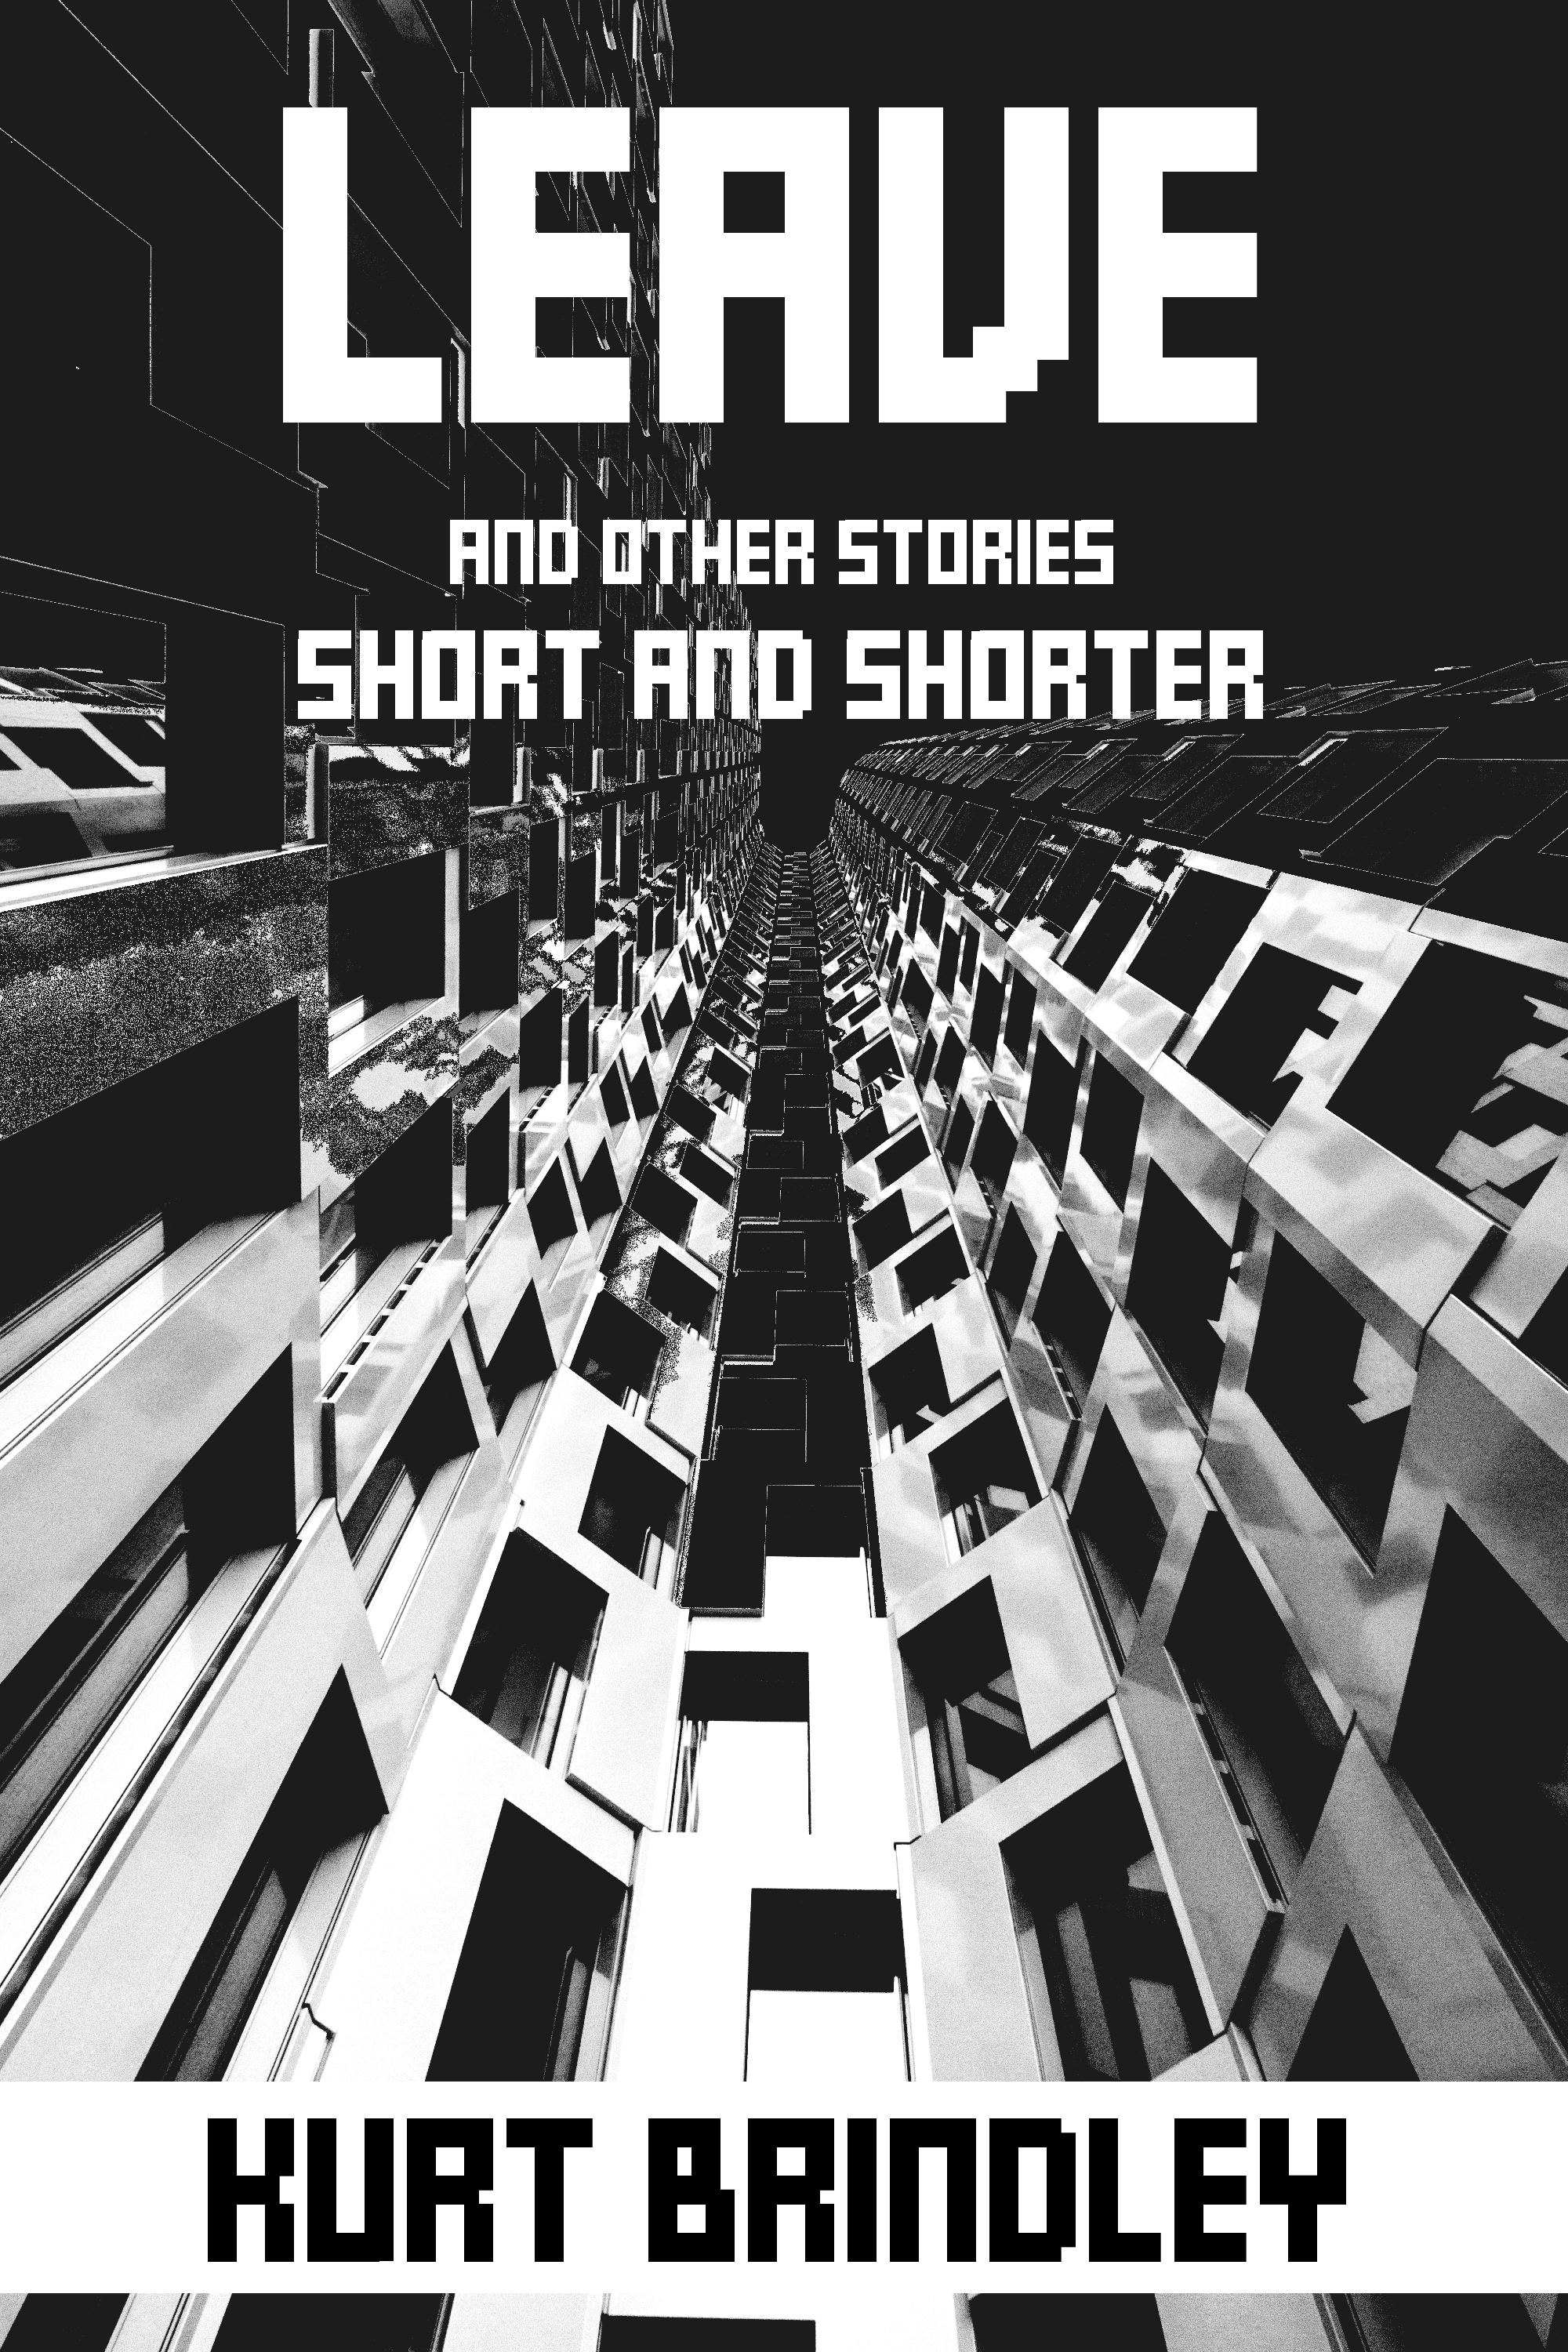 LEAVE: And Other Stories Short and Shorter